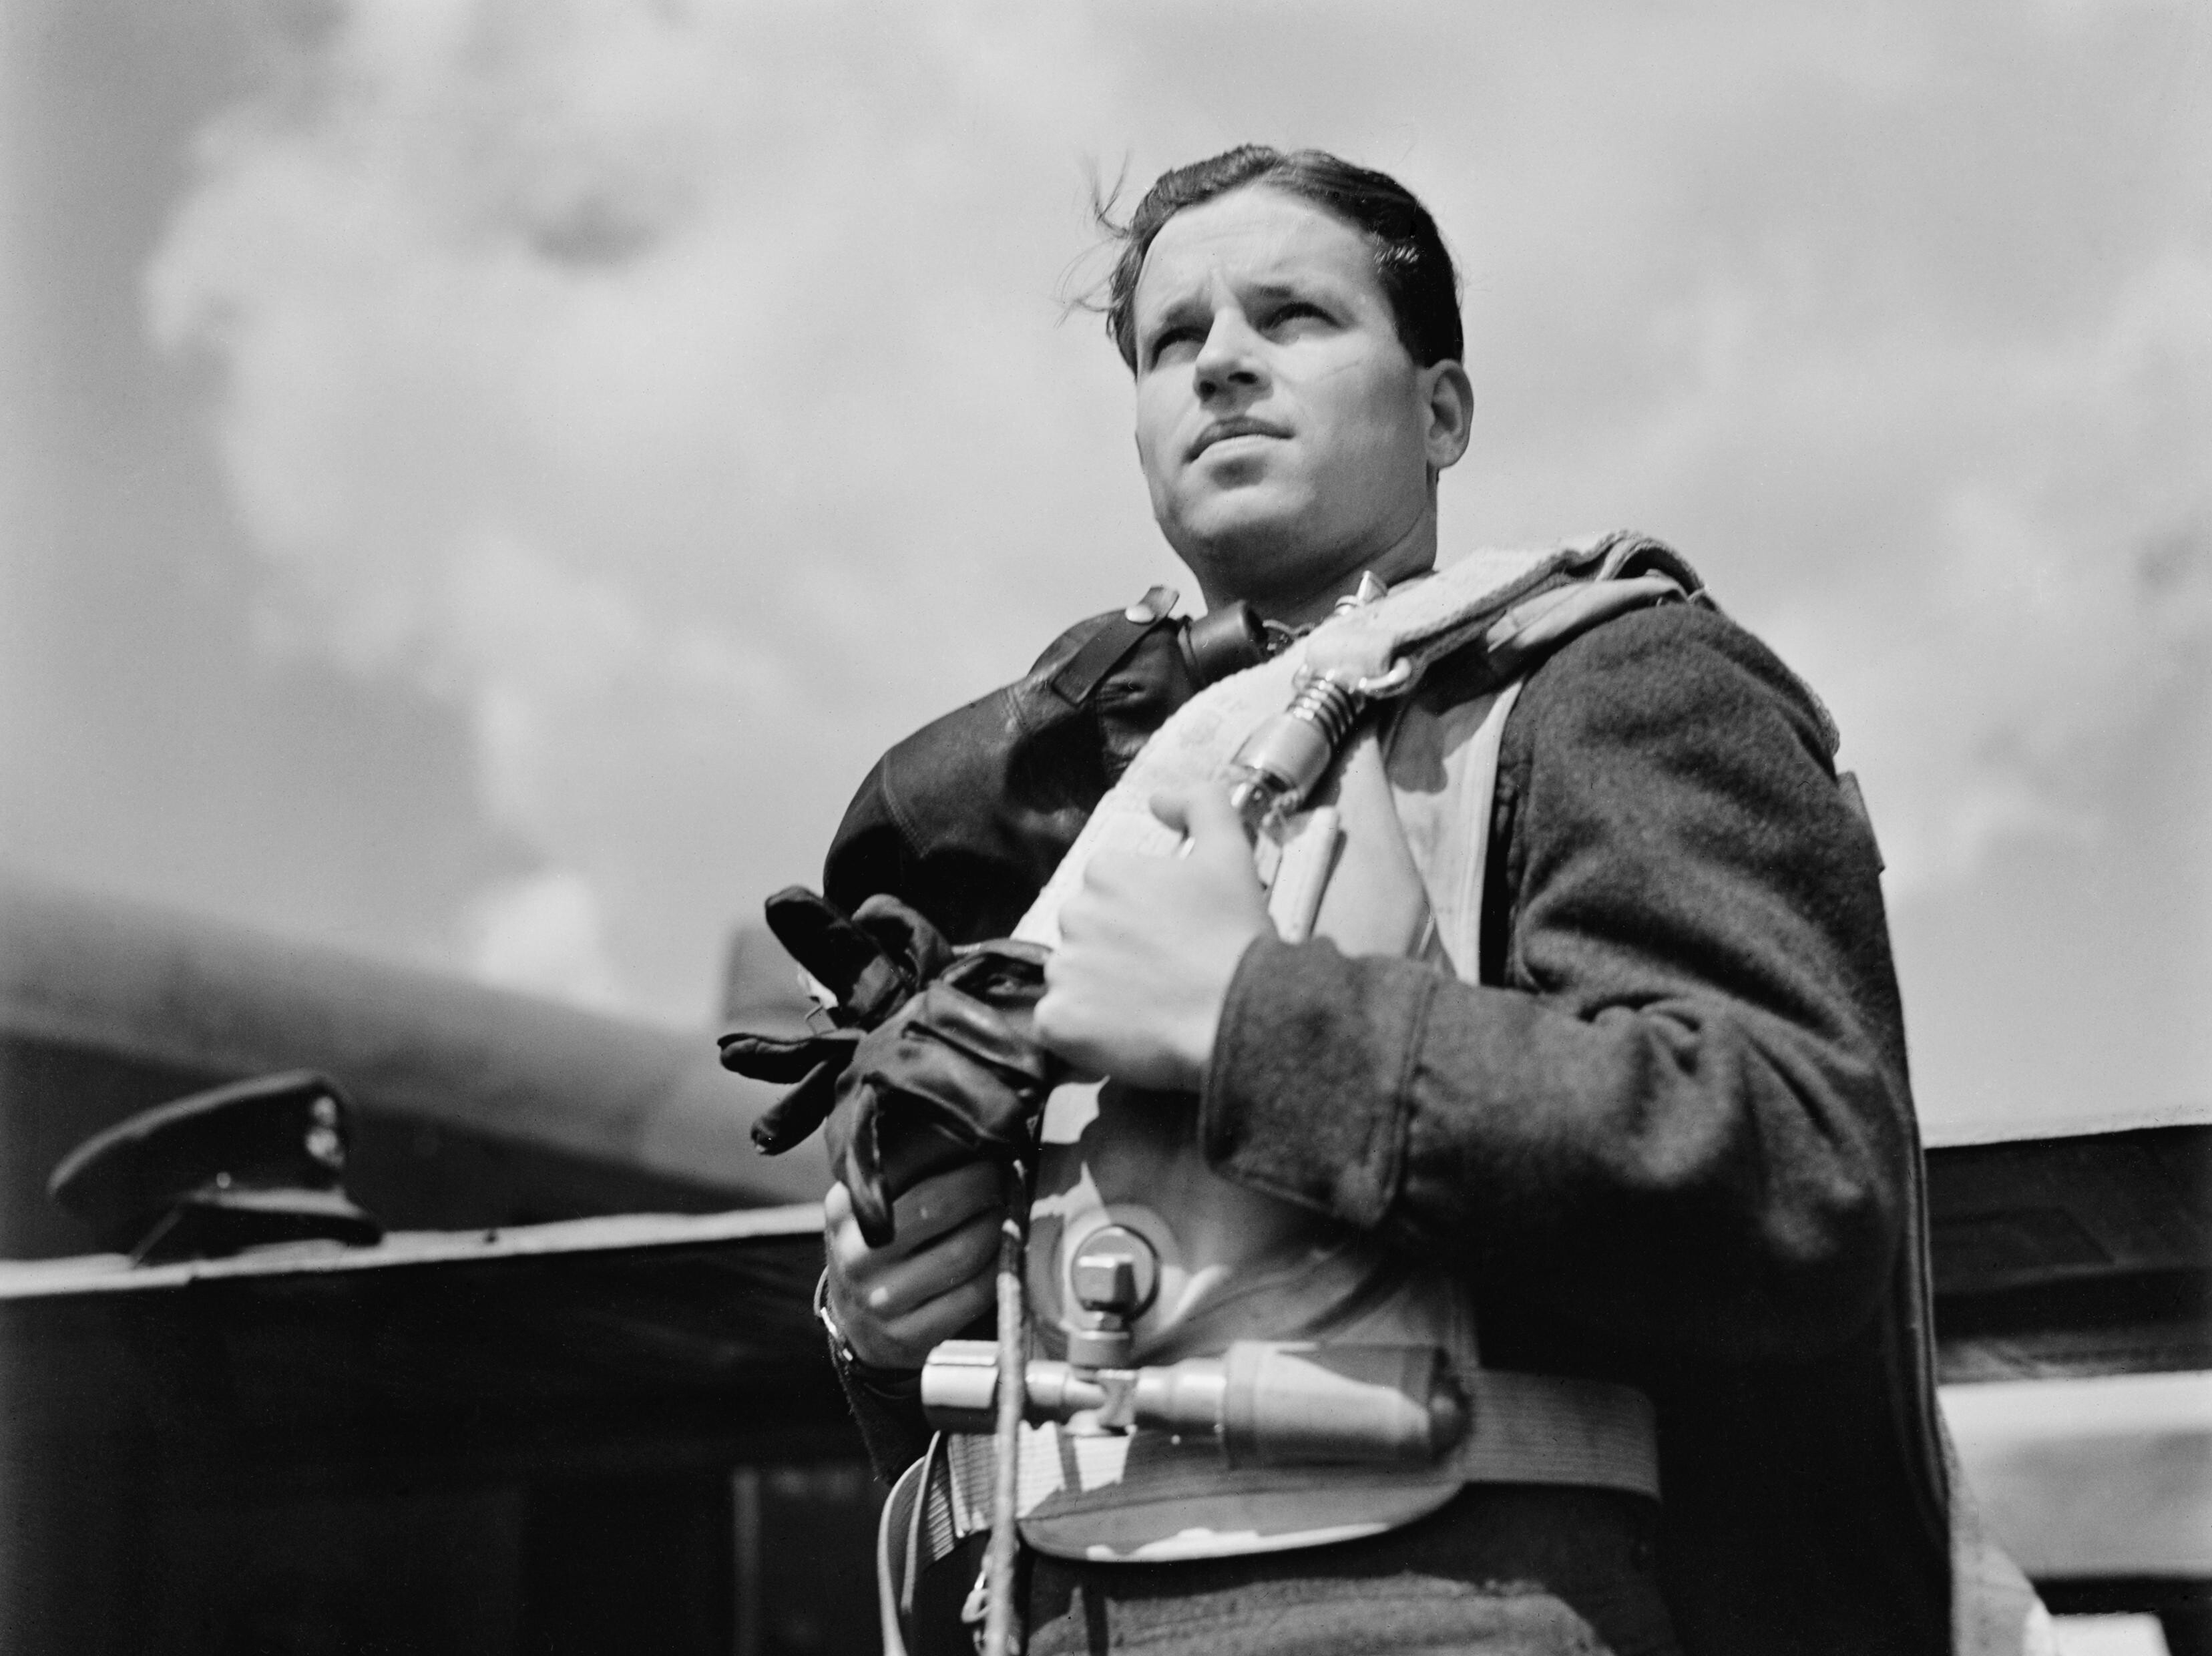 Wing Commander Guy Gibson VC, Commanding Officer of No. 617 Squadron (The Dambusters), May 1943. CH11047